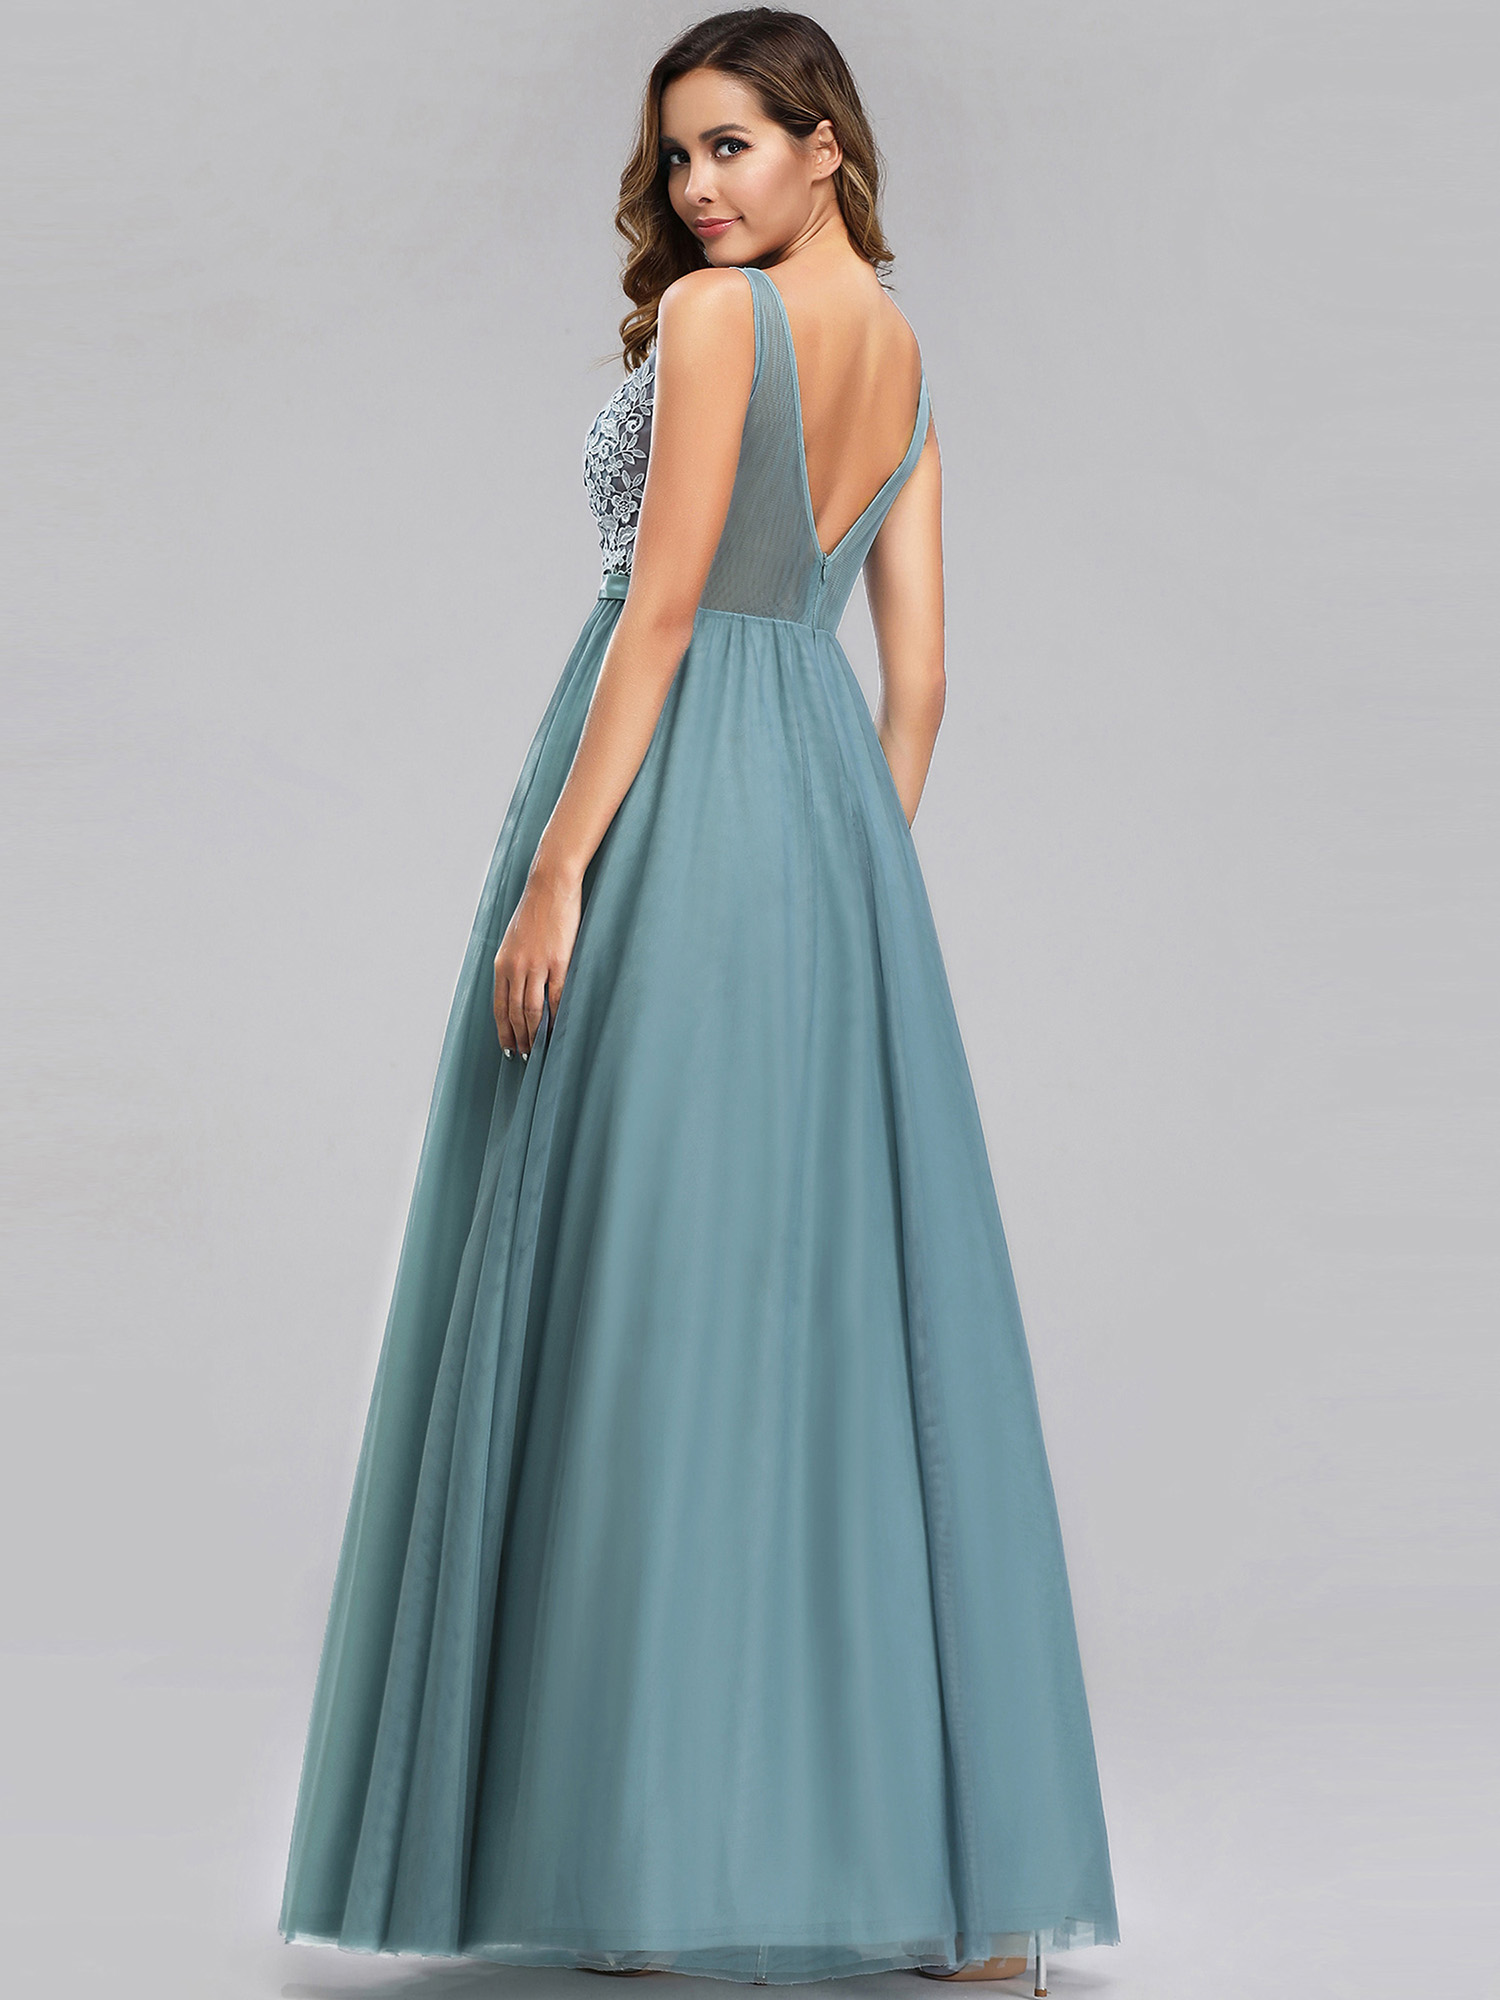 Ever-pretty-Formal-V-neck-Celebrity-Prom-Gown-Long-Evening-A-line-Cocktail-Dress thumbnail 5